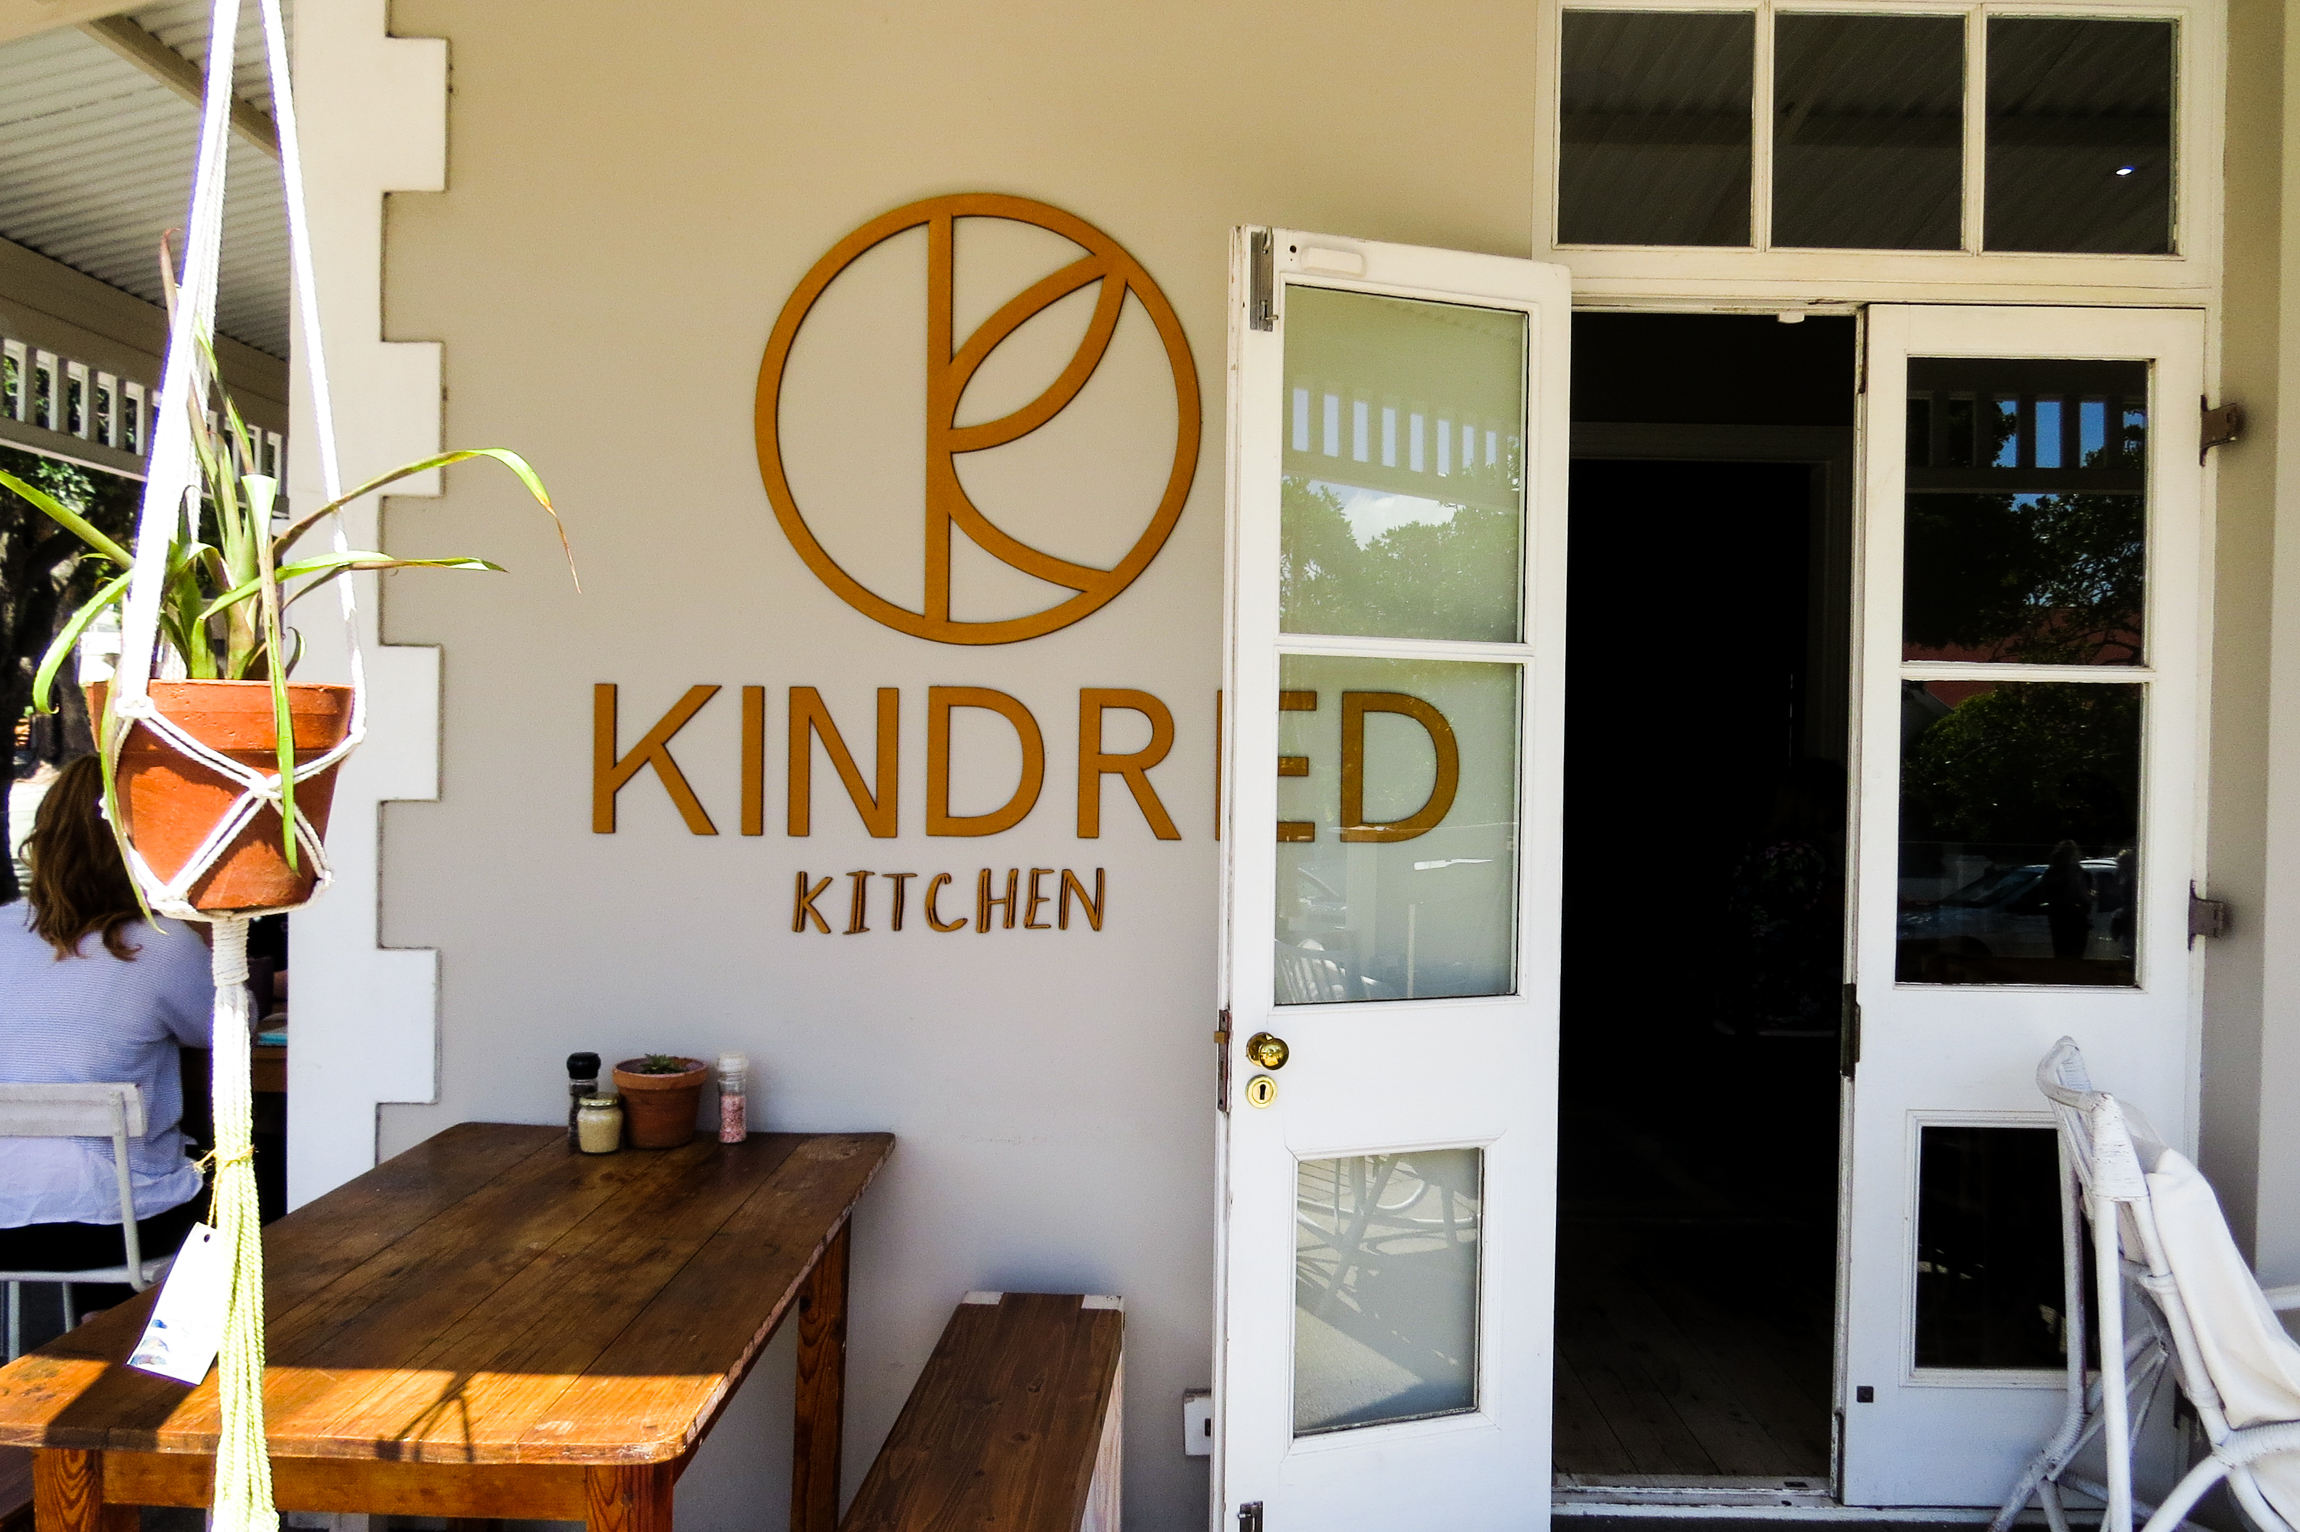 kindred kitchen outdoor area